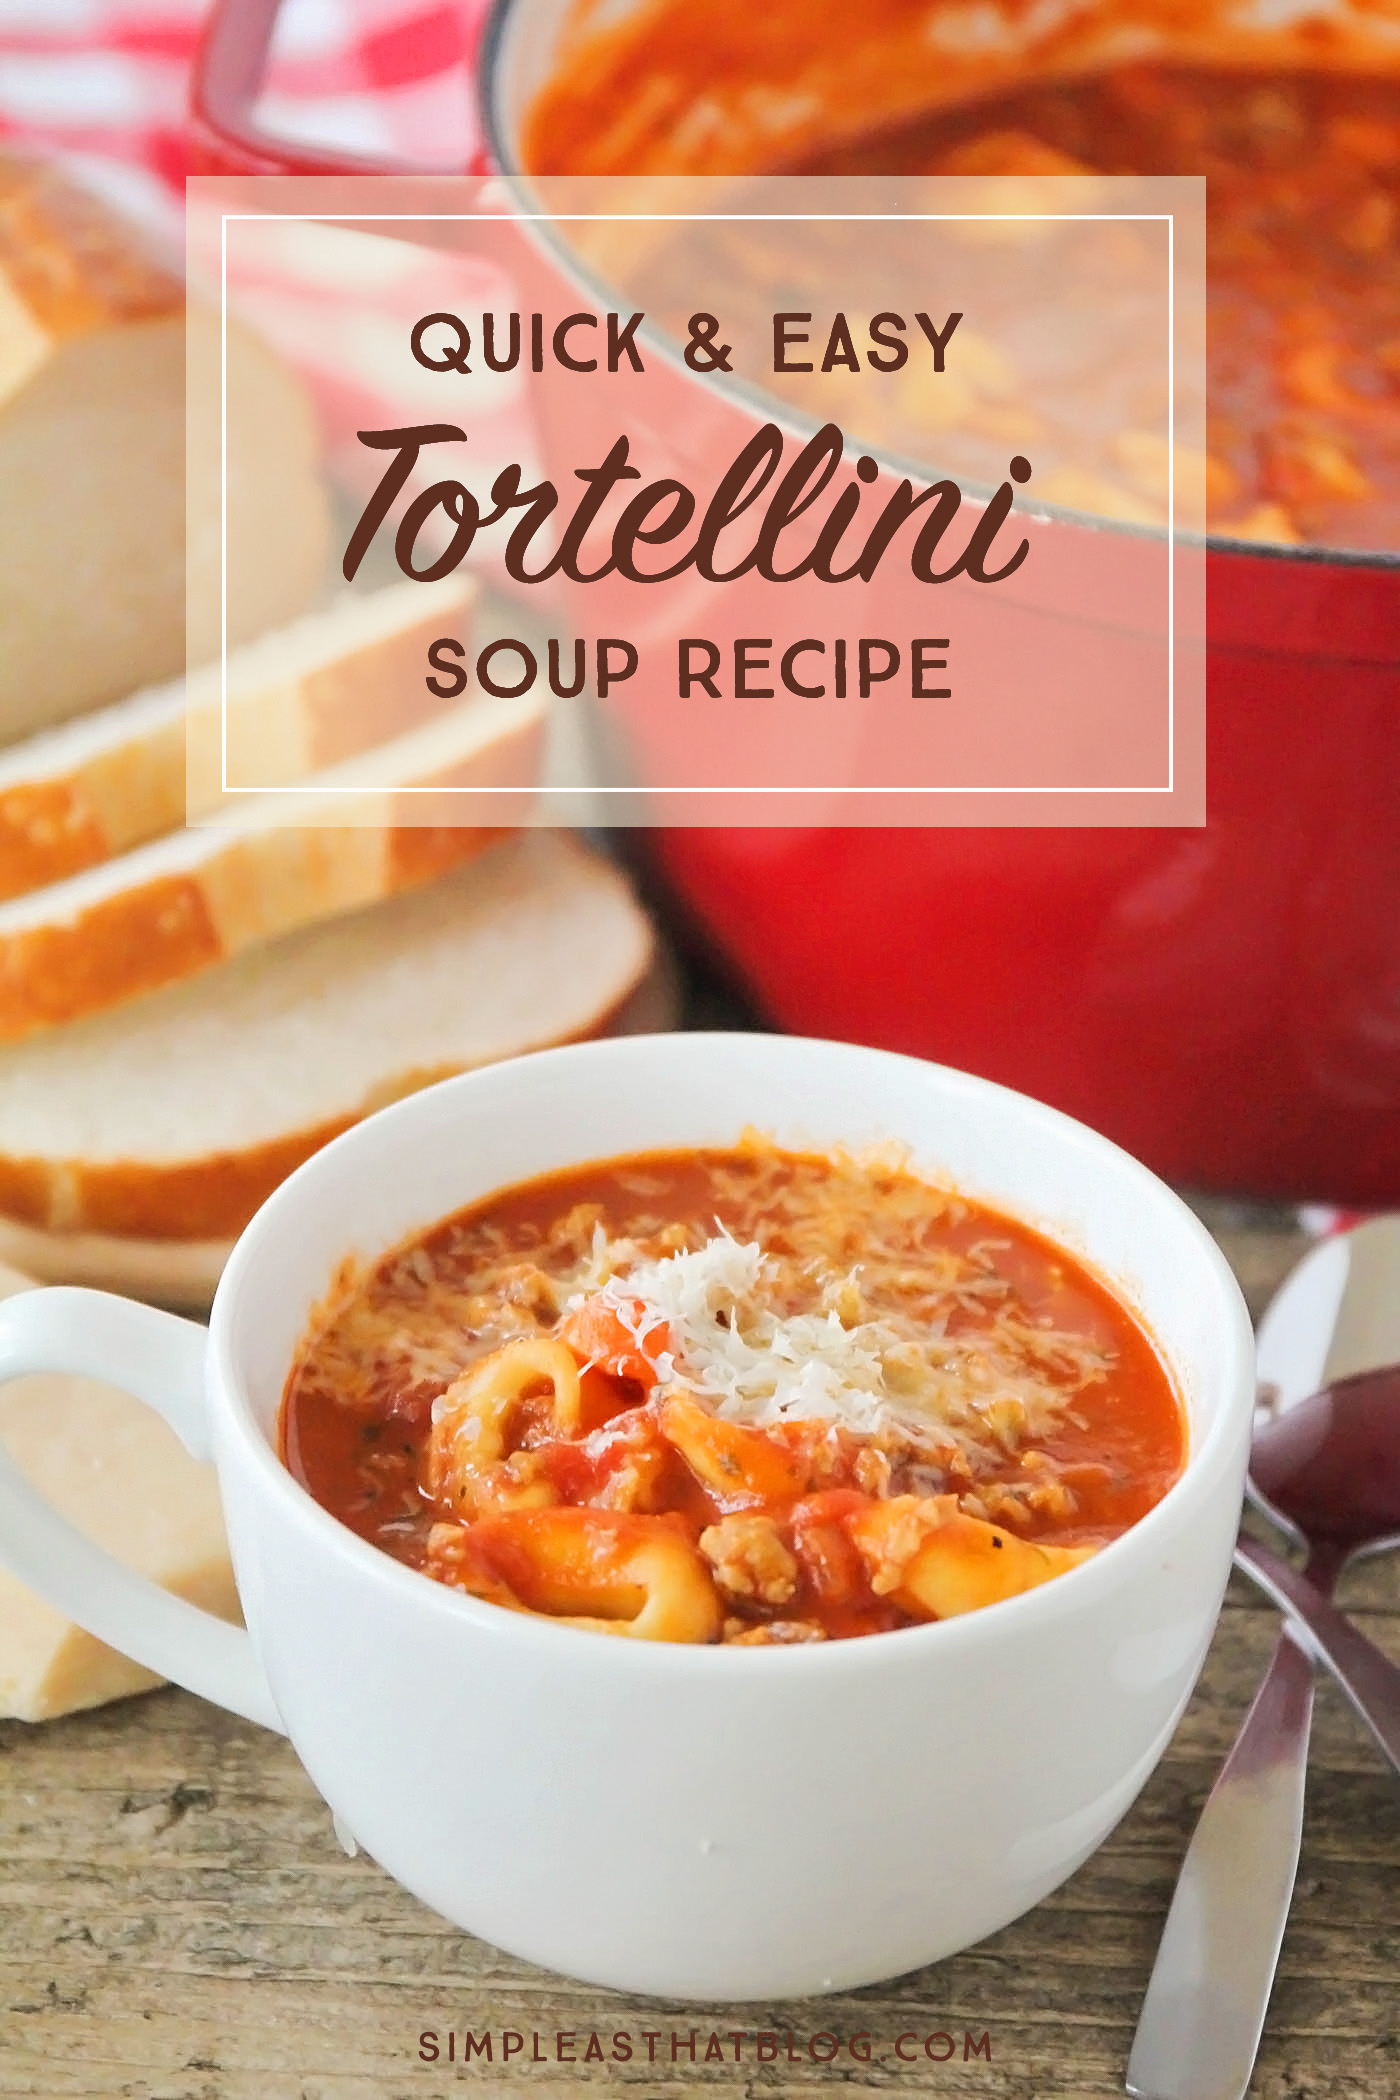 If you're short on time and looking for a warm, hearty meal to serve your family this week, you need to try this Quick and Easy Tomato Tortellini Soup Recipe!